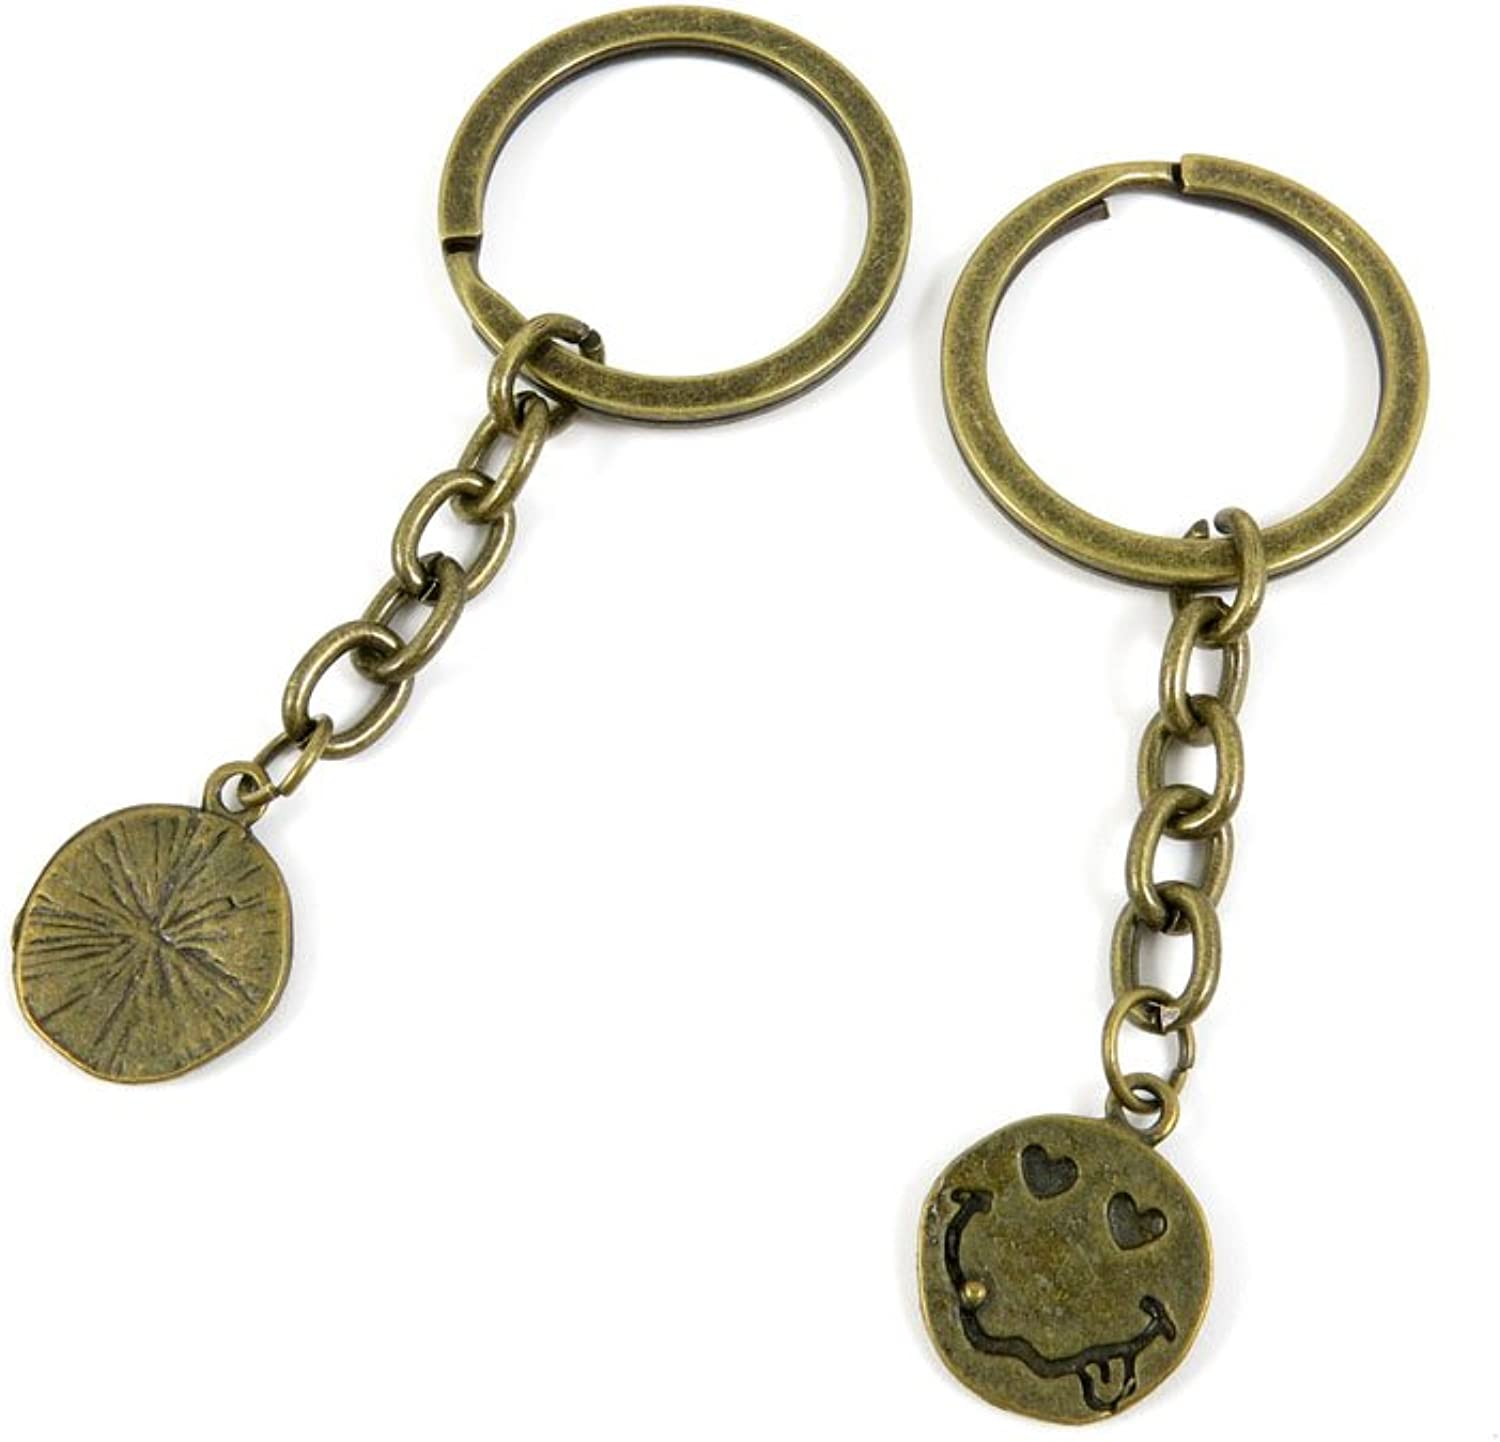 100 PCS Keyrings Keychains Key Ring Chains Tags Jewelry Findings Clasps Buckles Supplies S3XN4 Grimace